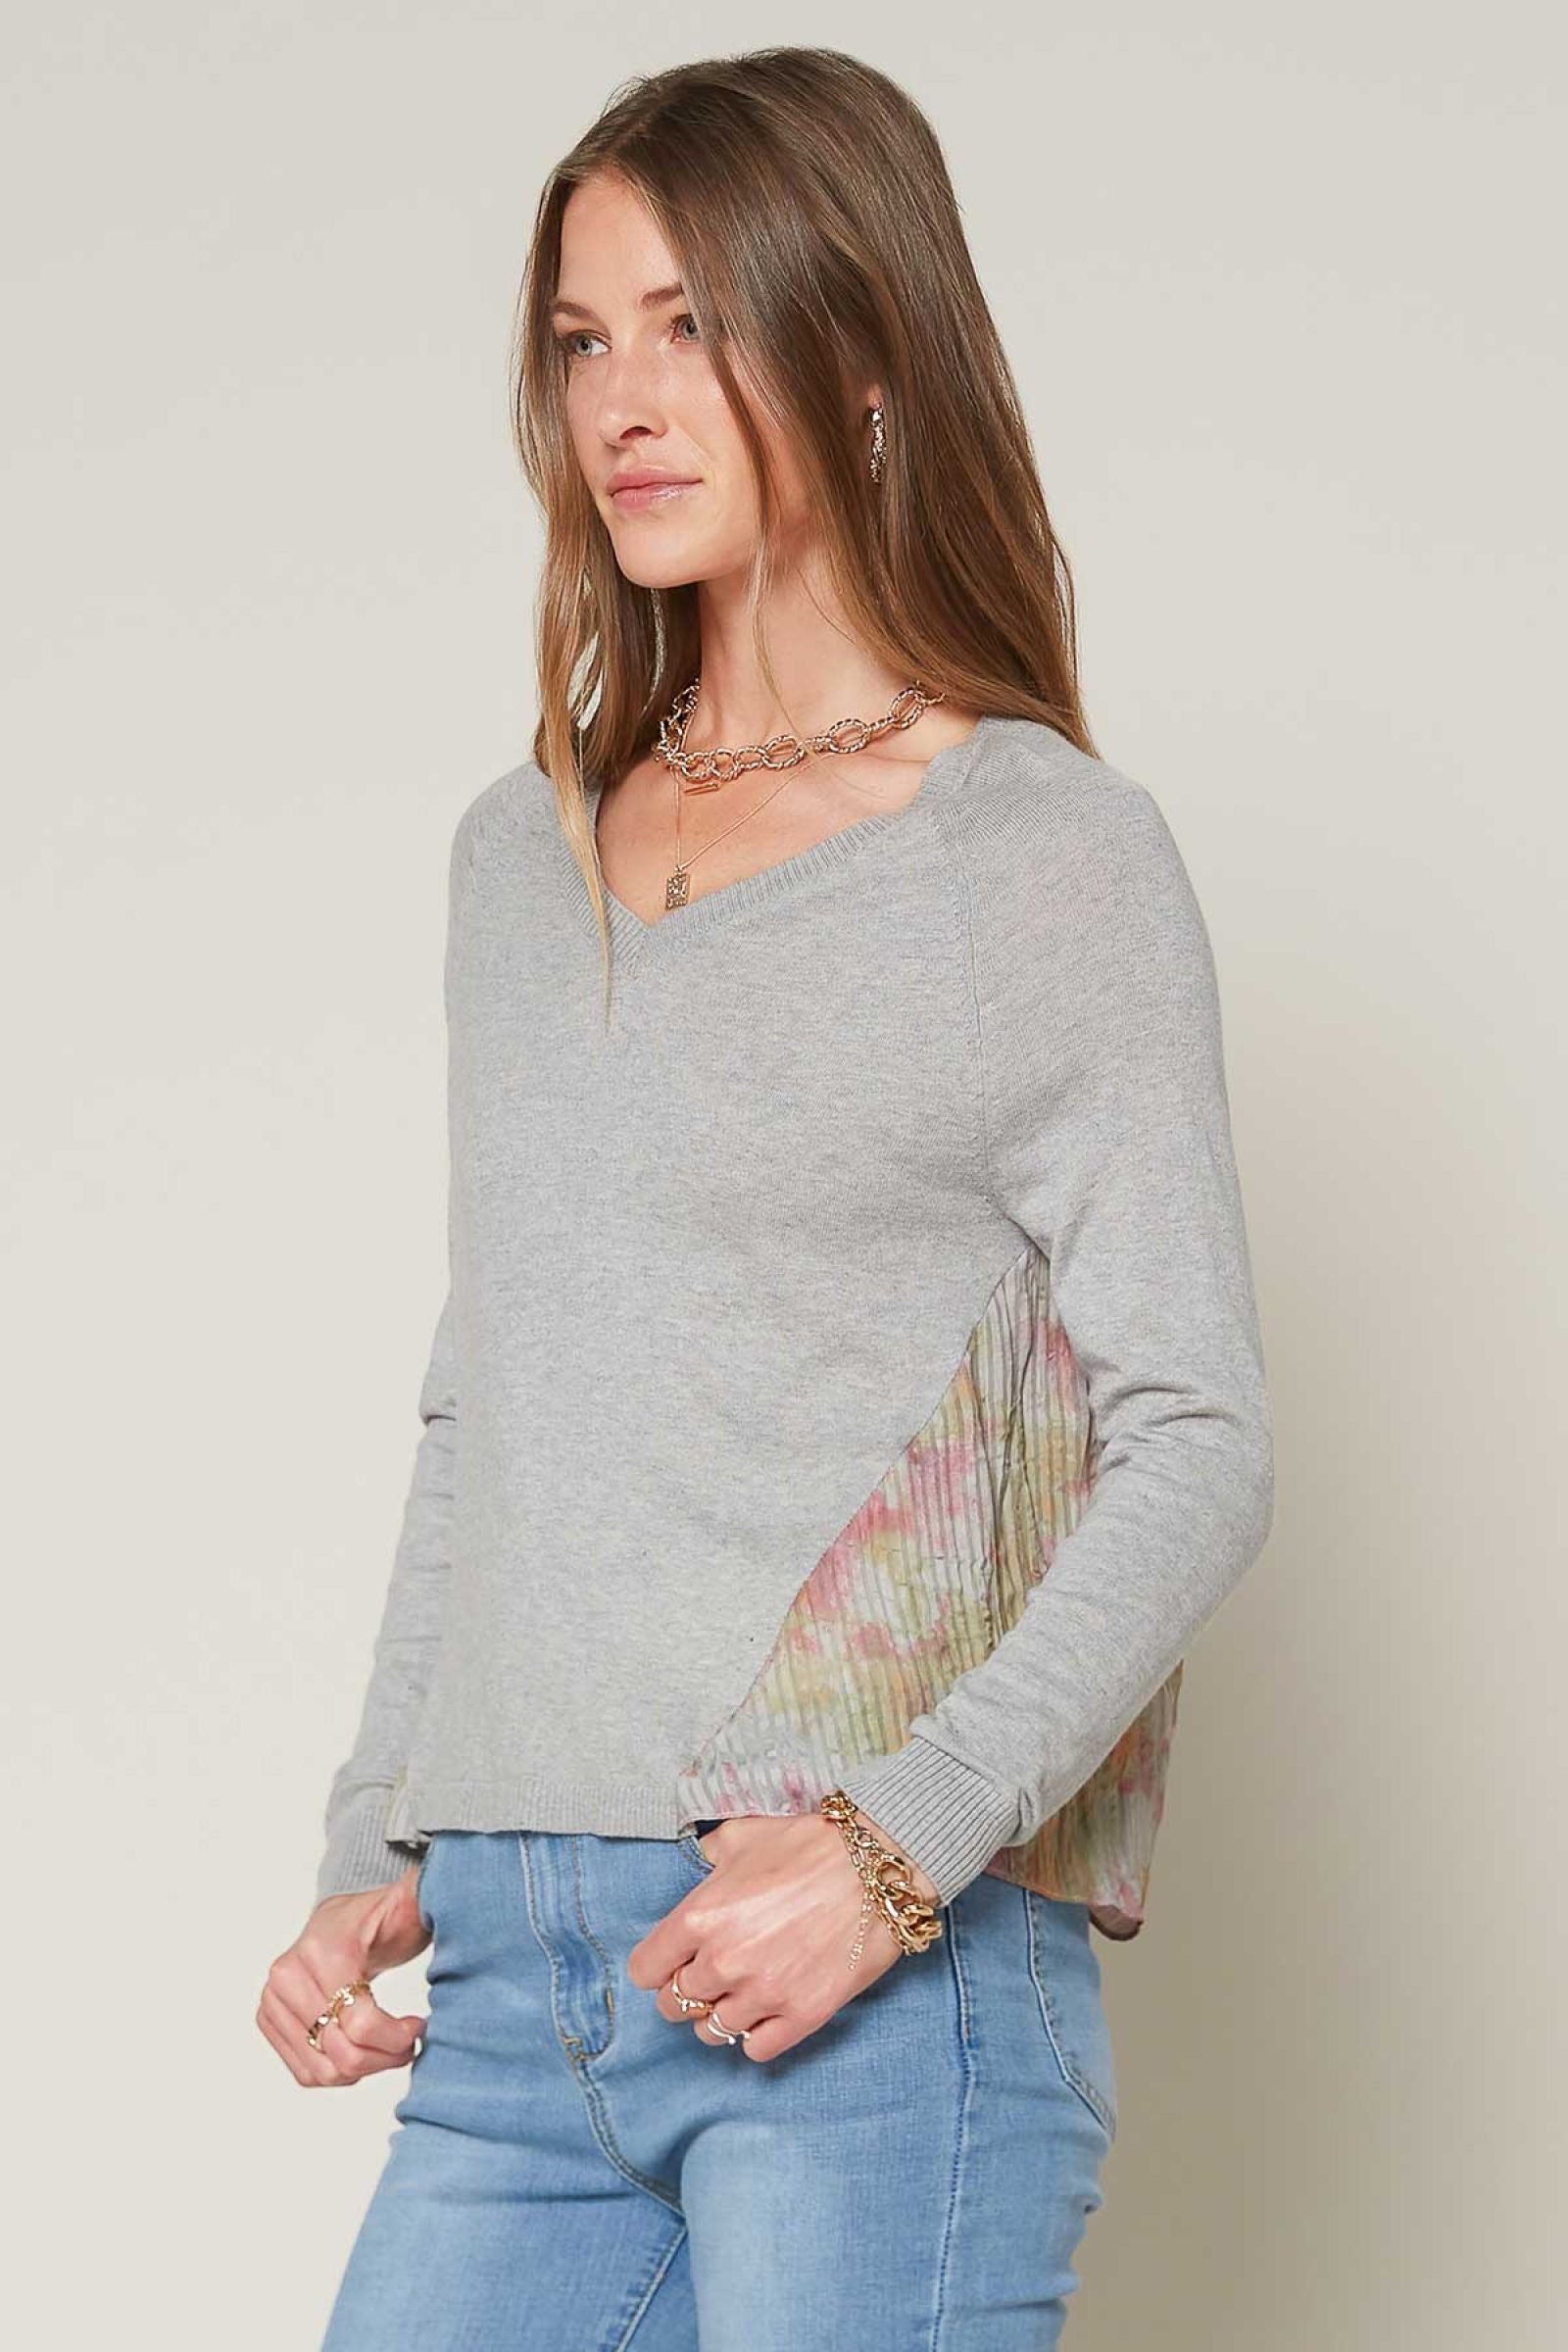 Contrast Pleated Tie Dye Sweater